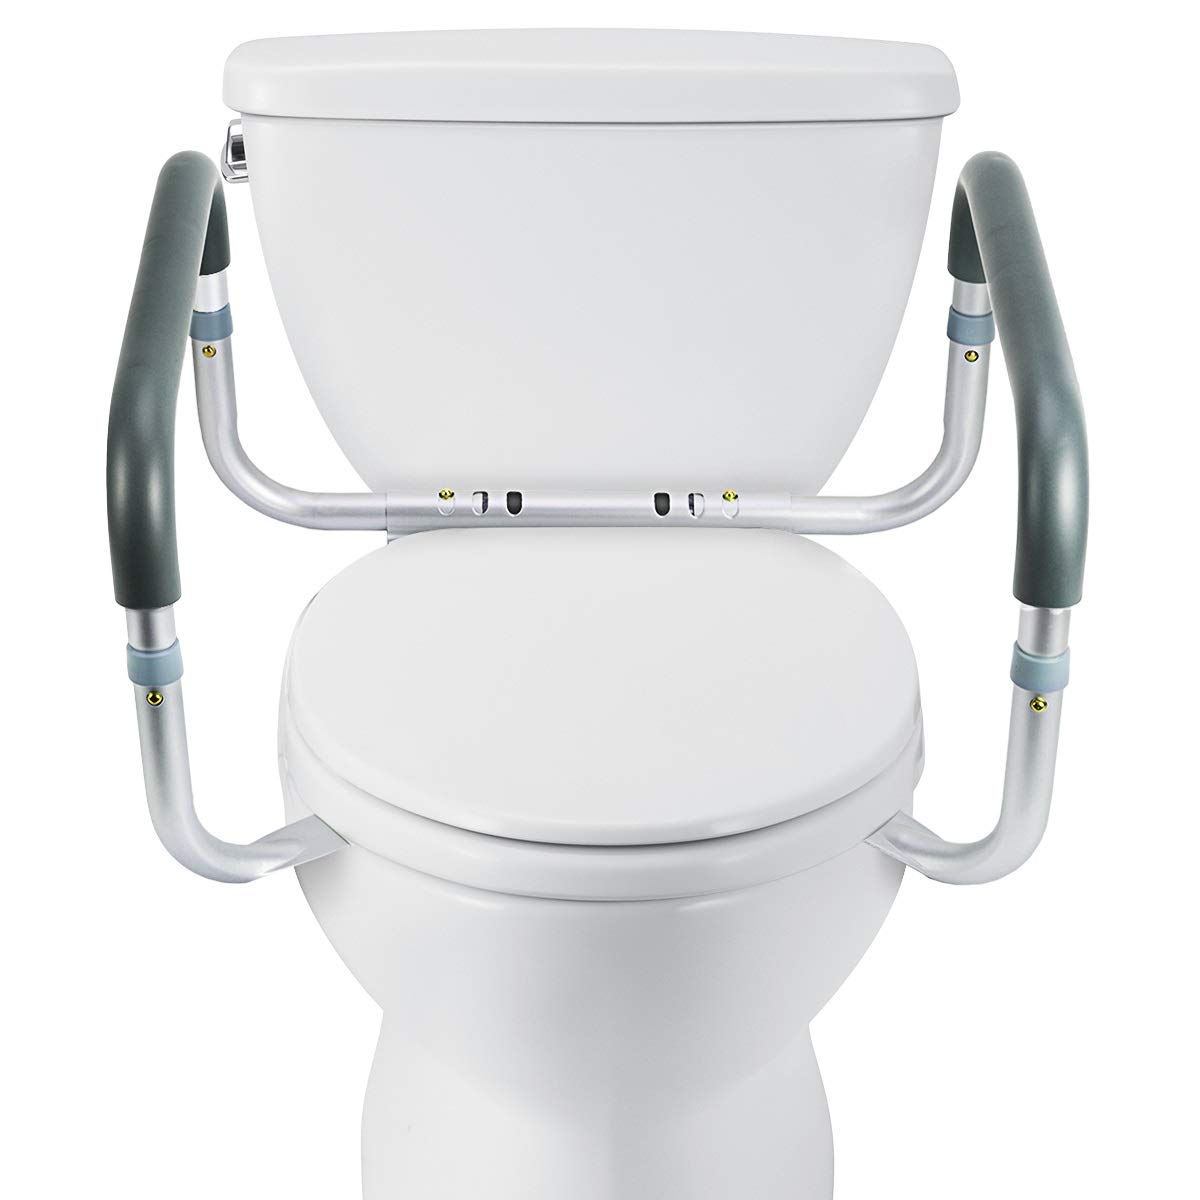 OasisSpace Medical Toilet Safety Frame - Adjustable Compact Support Hand Rails for Bathroom Toilet Seat - Easy Installation for Handicap Senior Bariatrics & Elderly by OasisSpace